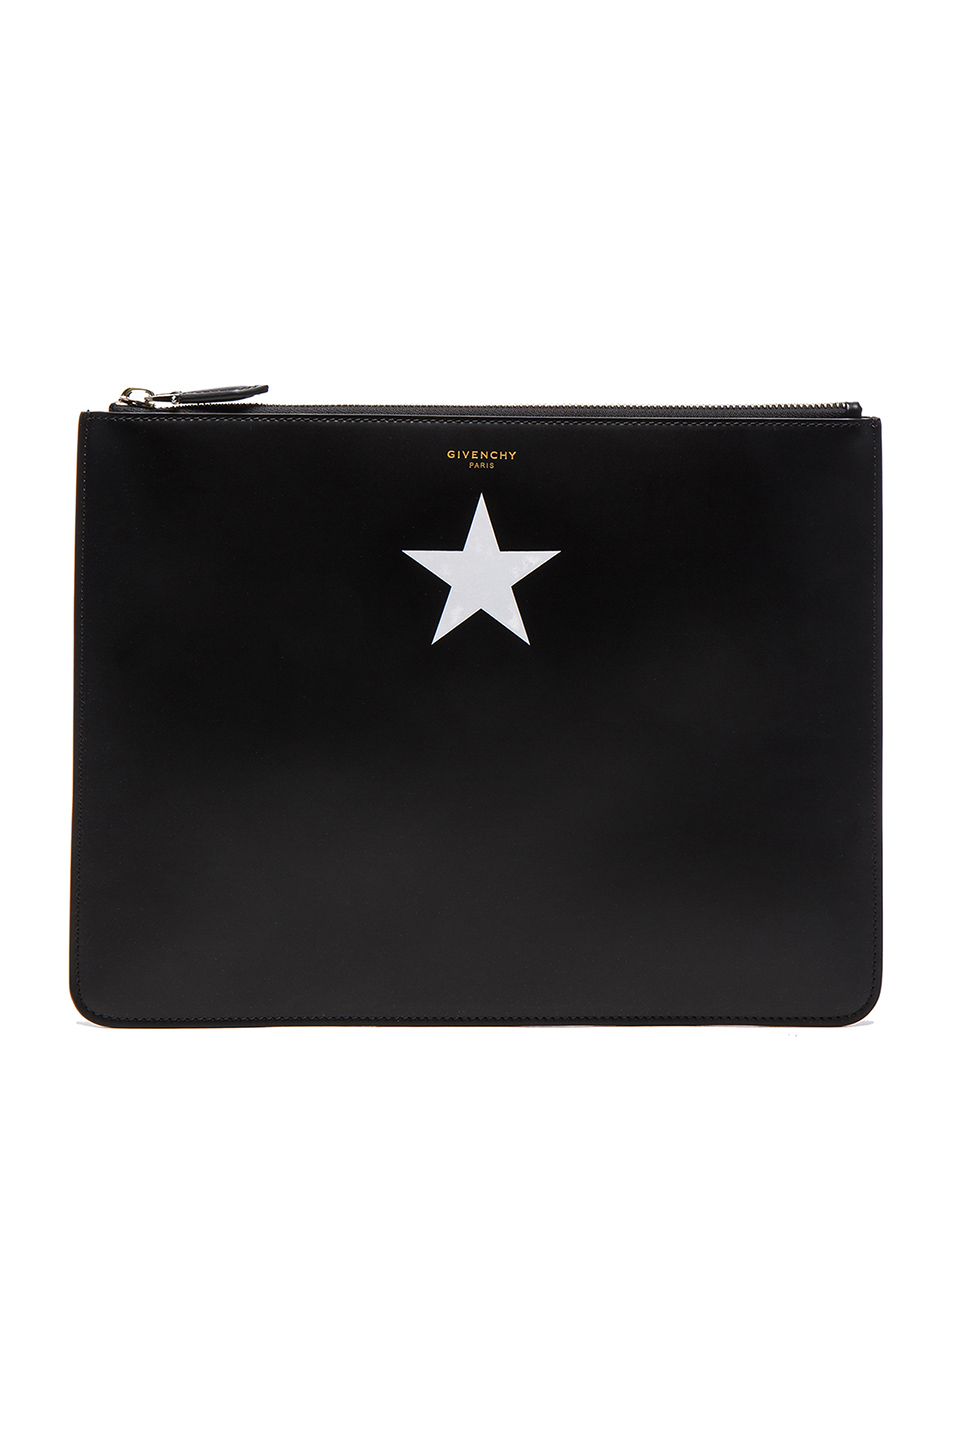 Givenchy White Star on Leather Pouch in Black